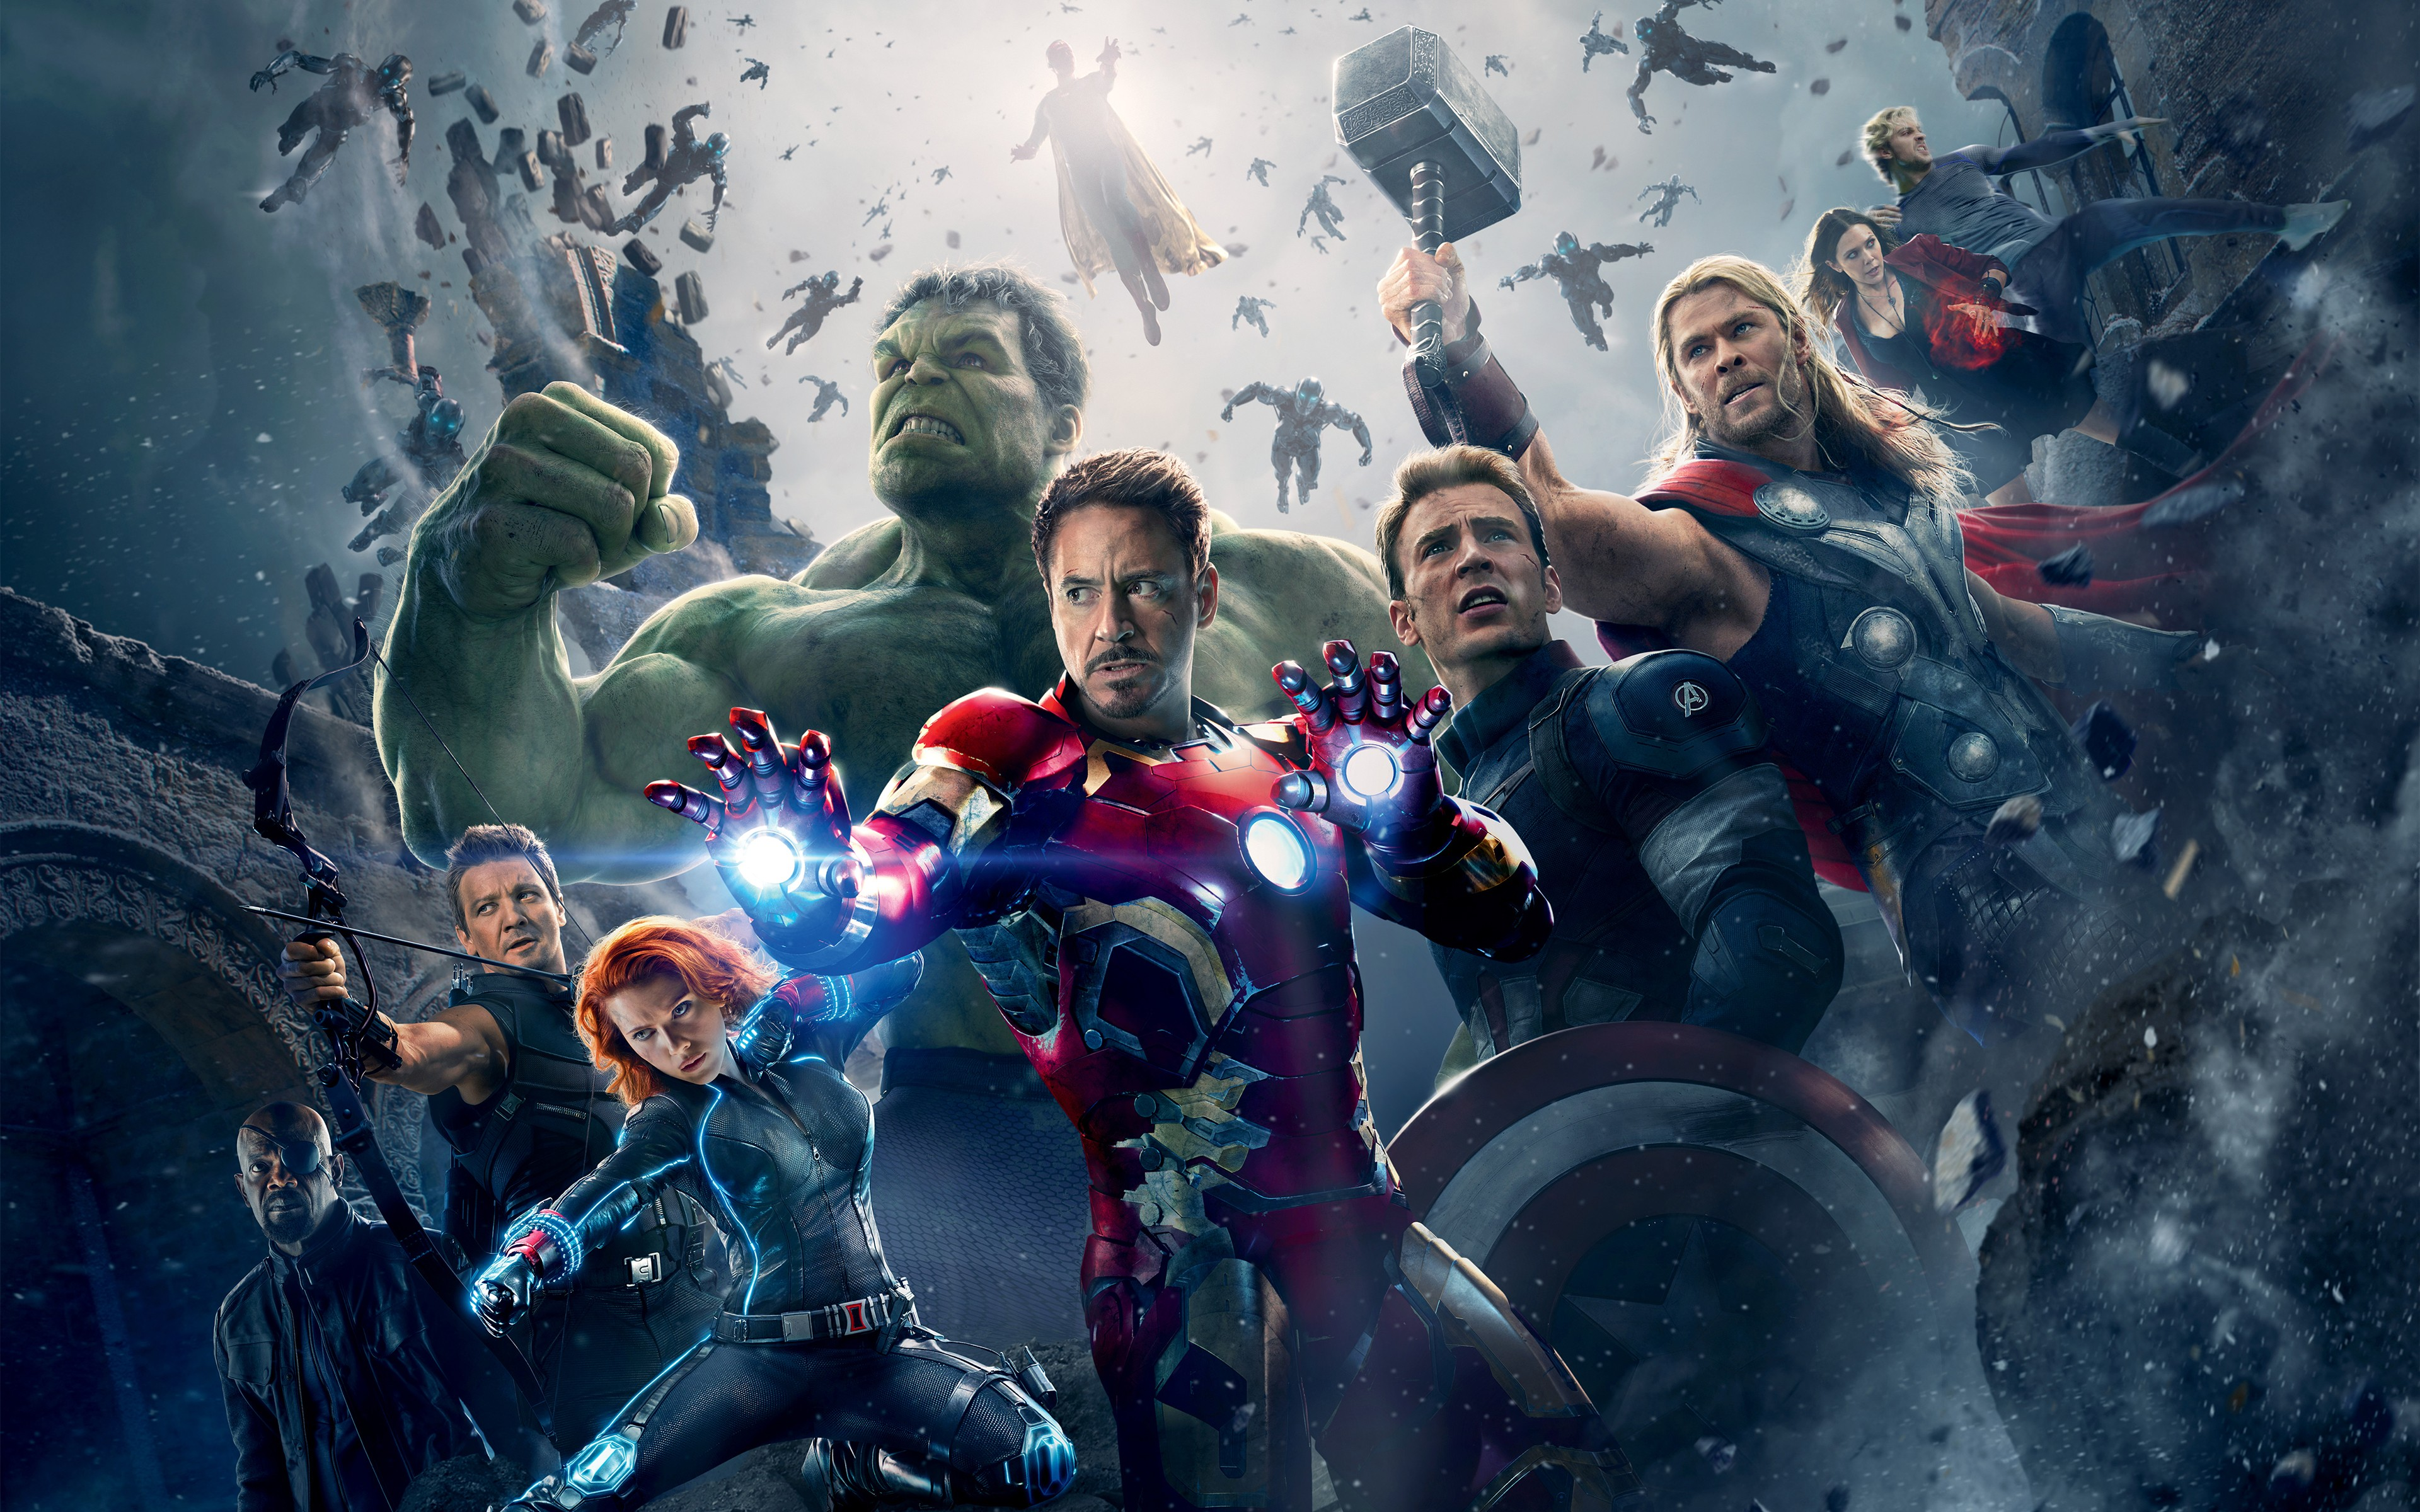 General 3840x2400 The Avengers Avengers: Age of Ultron Thor Hulk Iron Man Captain America Black Widow Hawkeye Tony Stark Scarlet Witch Quicksilver Nick Fury The Vision Scarlett Johansson Elizabeth Olsen